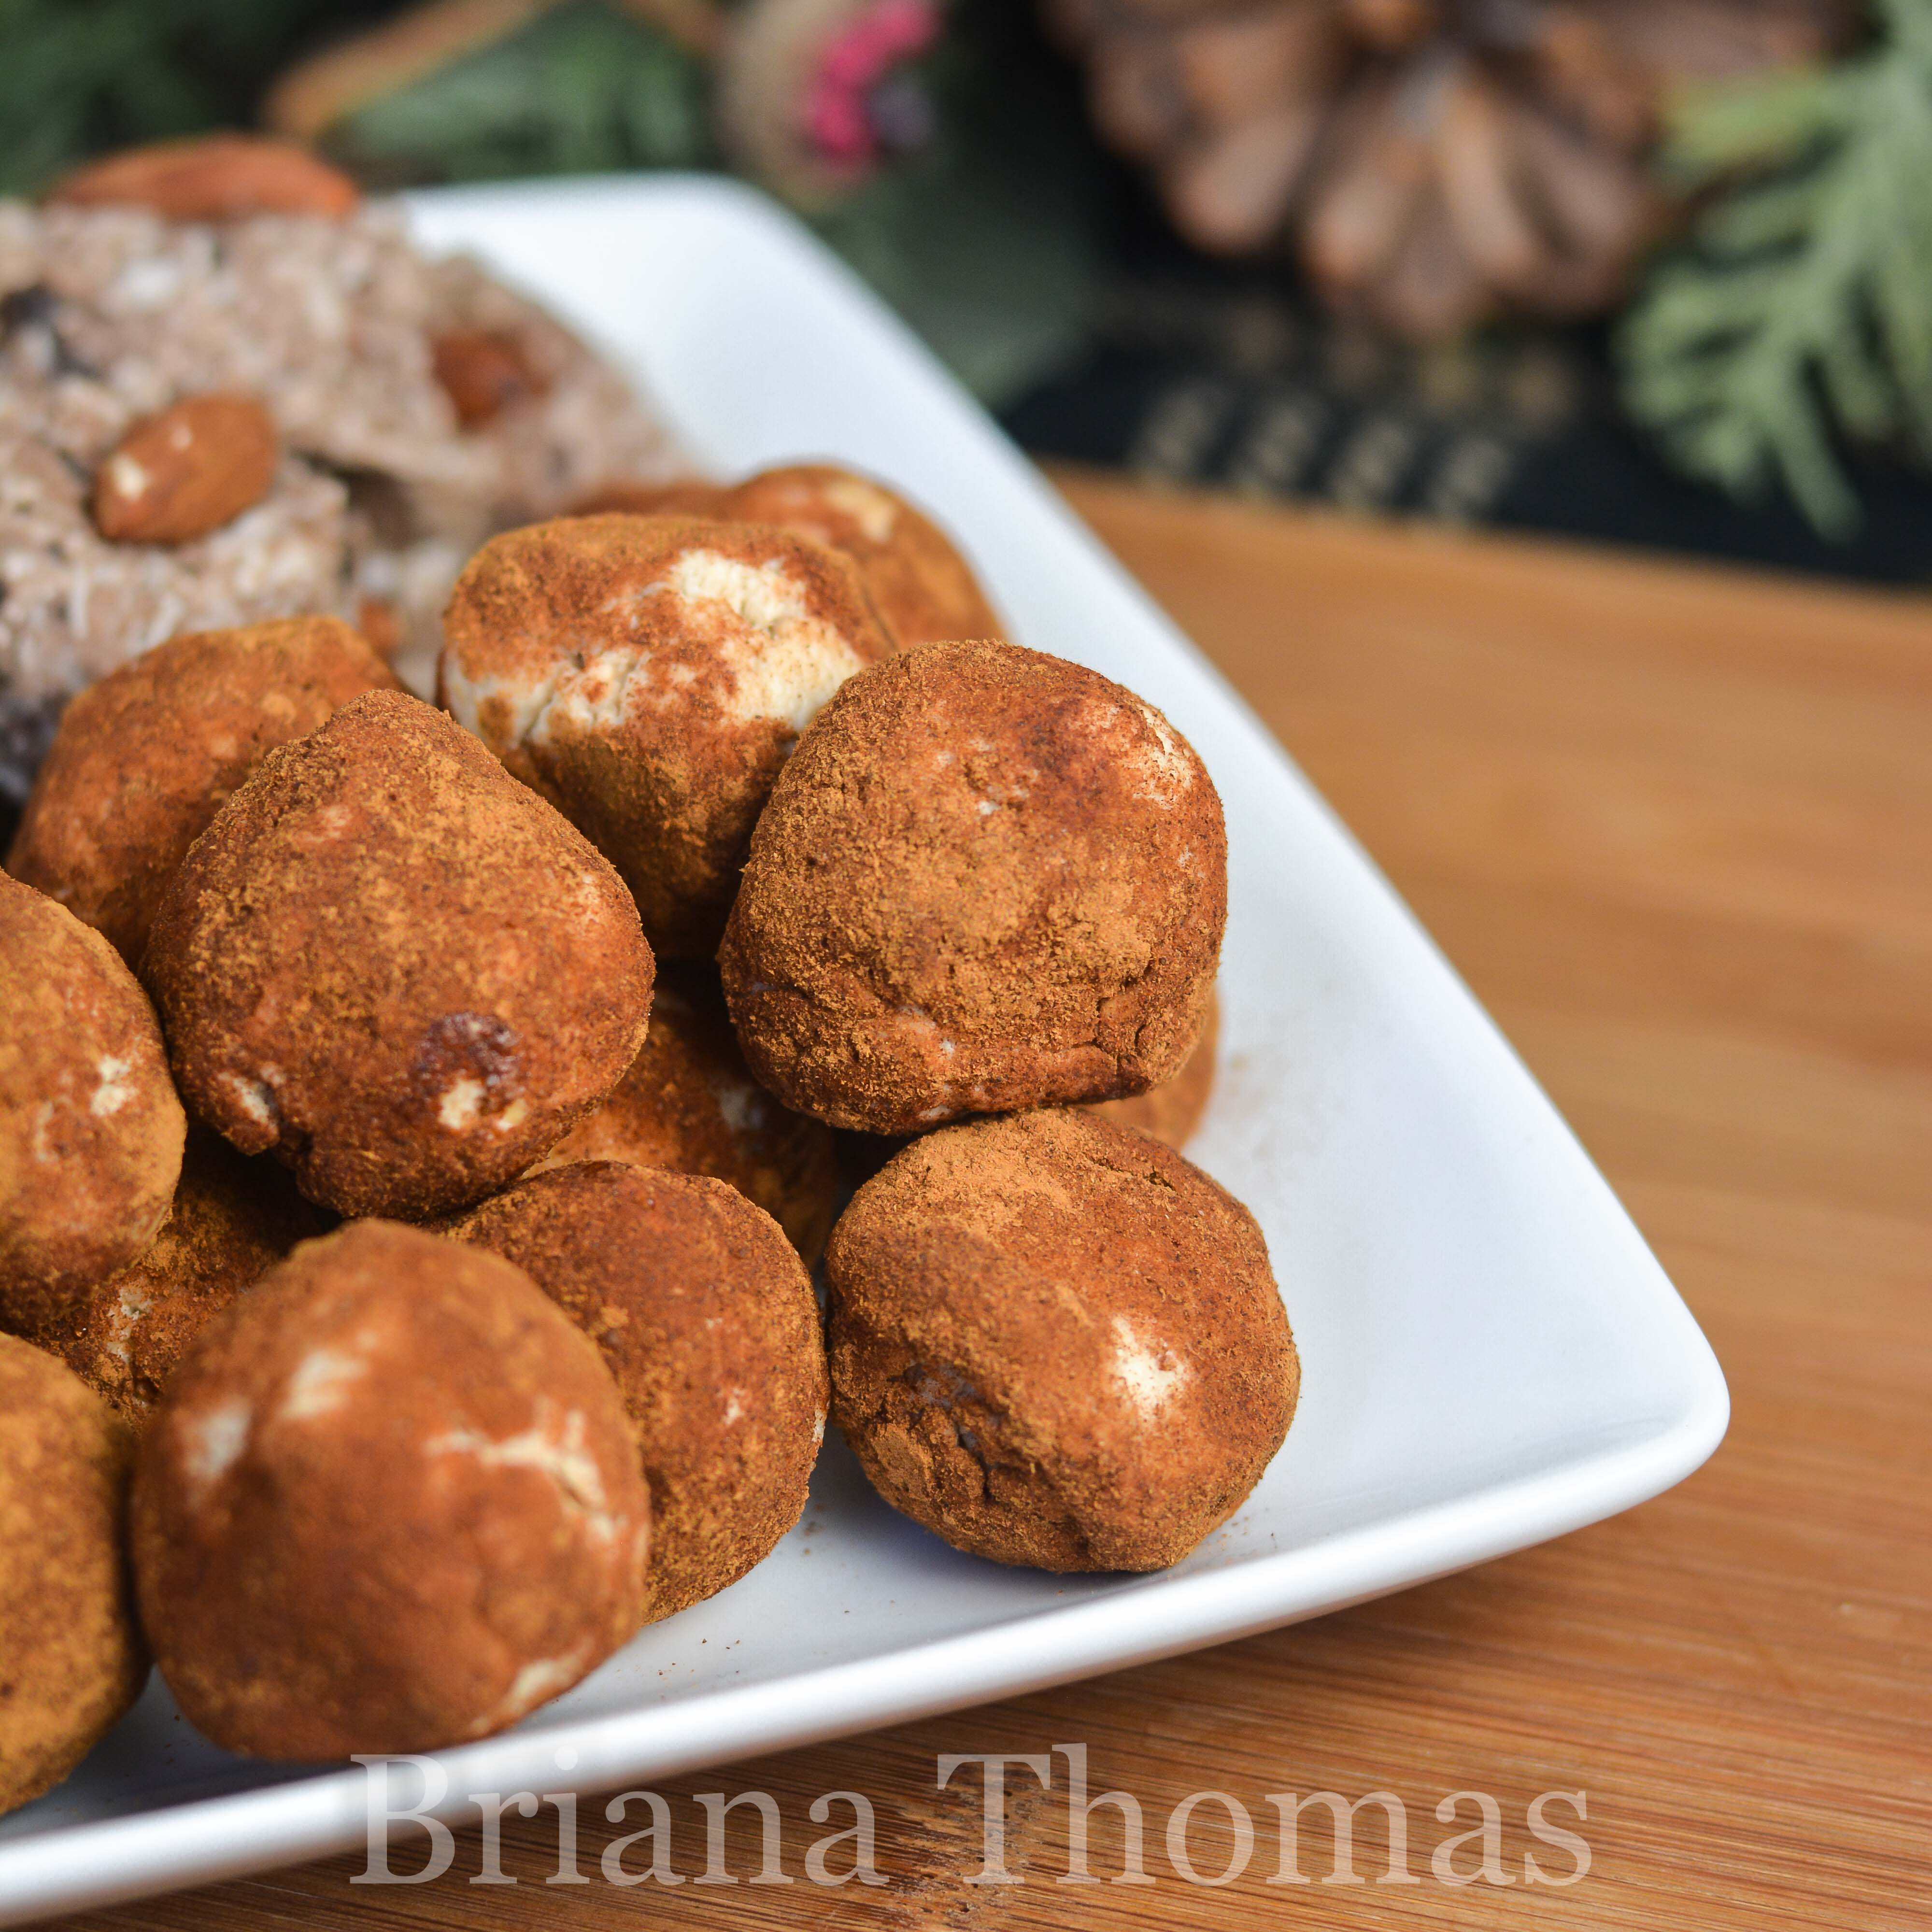 These Snickerdoodle Truffles taste like raw snickerdoodle or cinnamon roll dough! THM:S, low carb, sugar free, gluten/egg/nut free